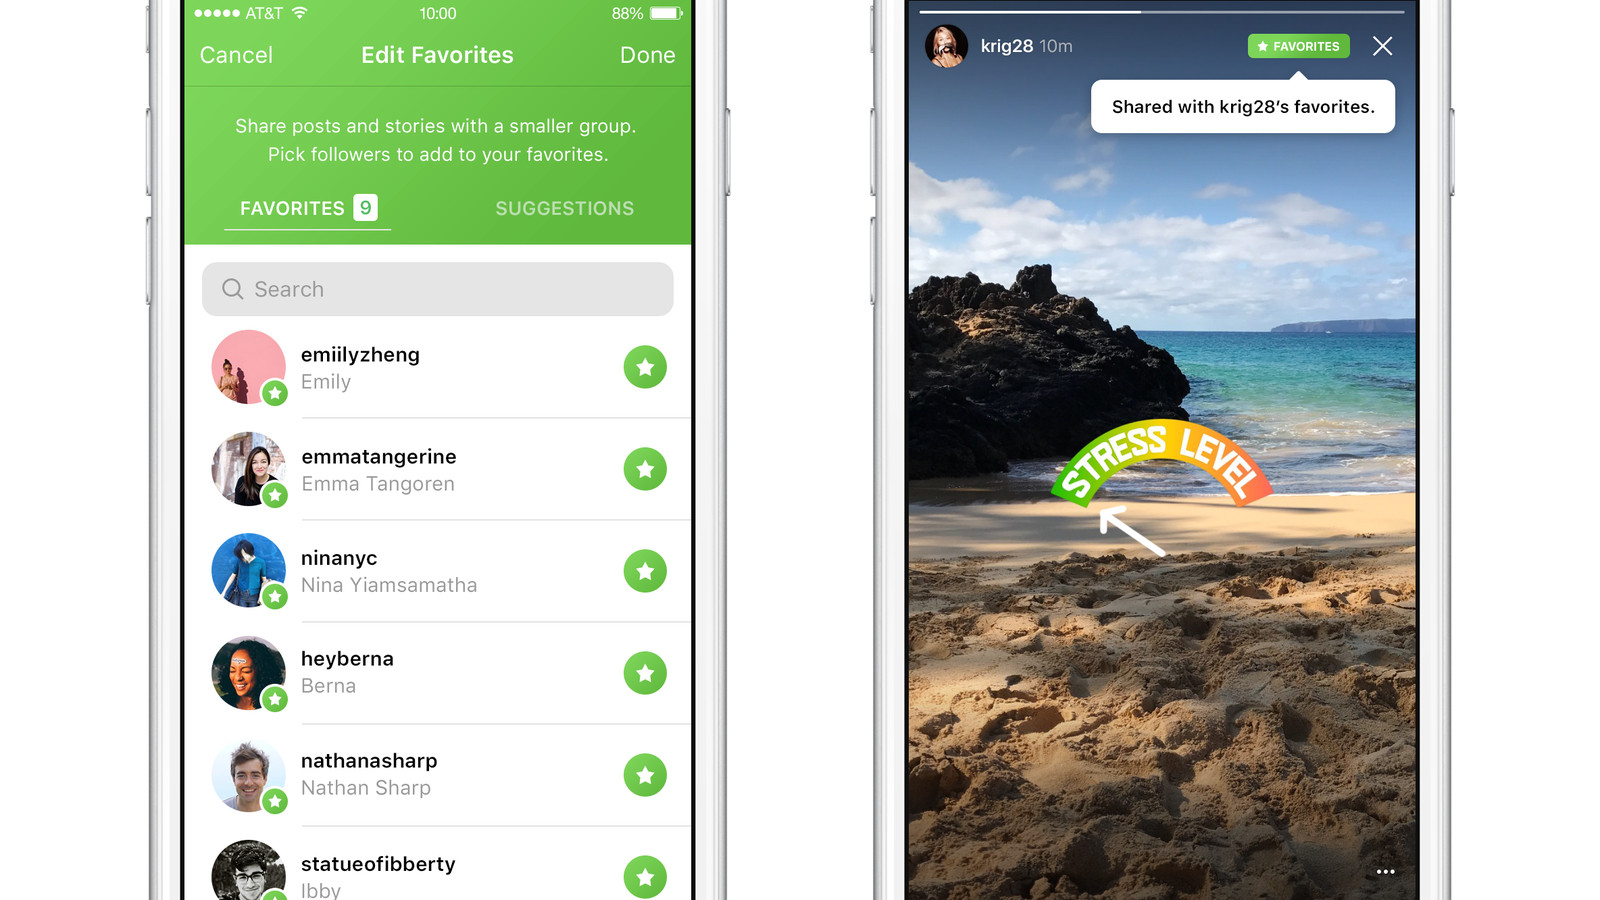 theverge.com - Instagram tests favorites, a major rethinking of private sharing